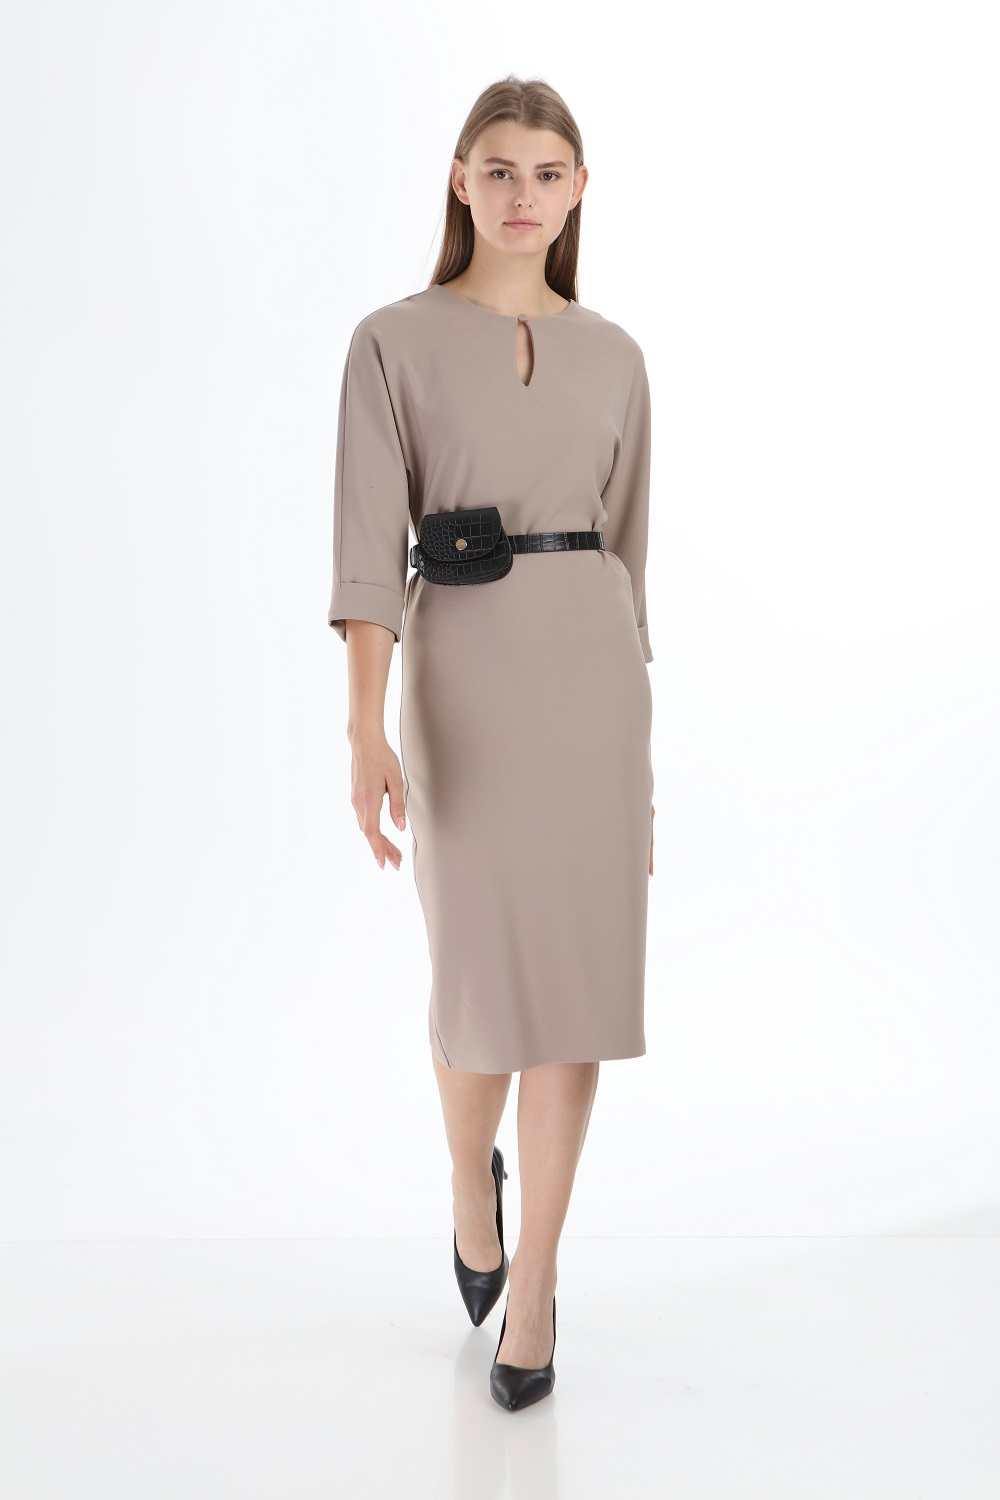 Mink Colored Dress With Bag and Belt